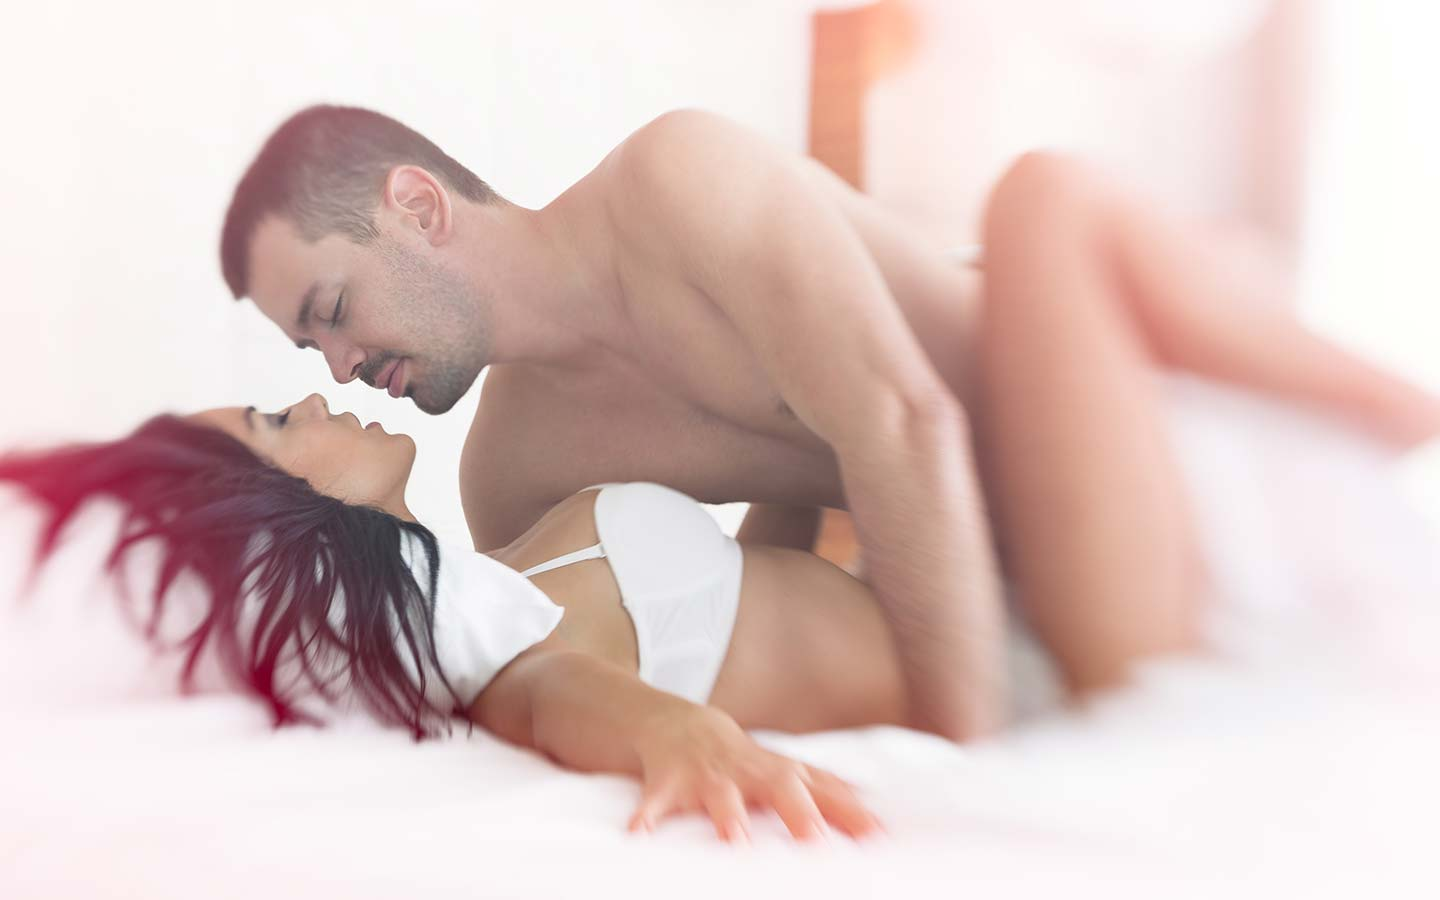 The pros and cons of popular sex positions